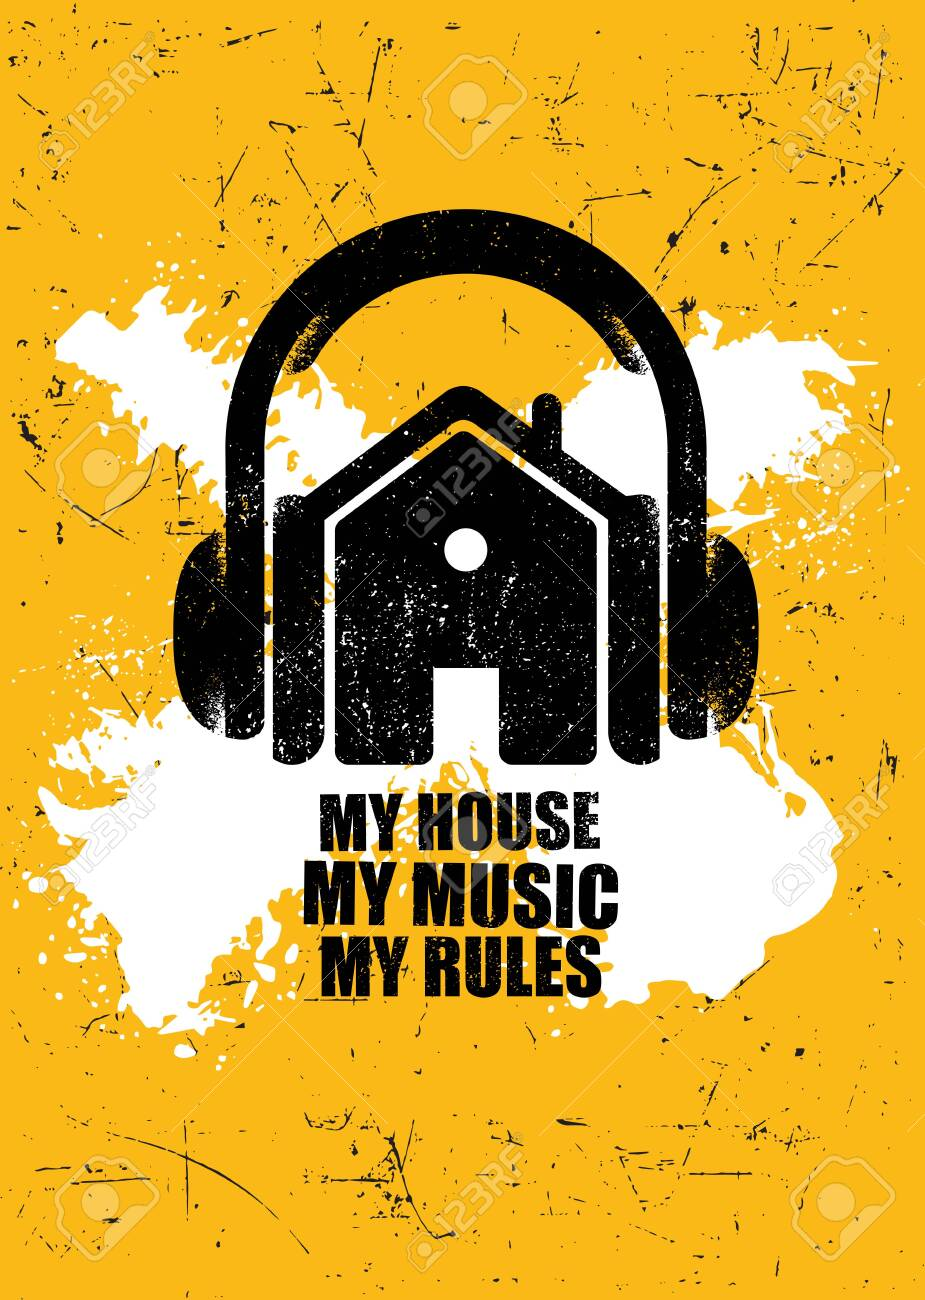 My House. My Music. My Rules. Inspiring Typography Creative Motivation..